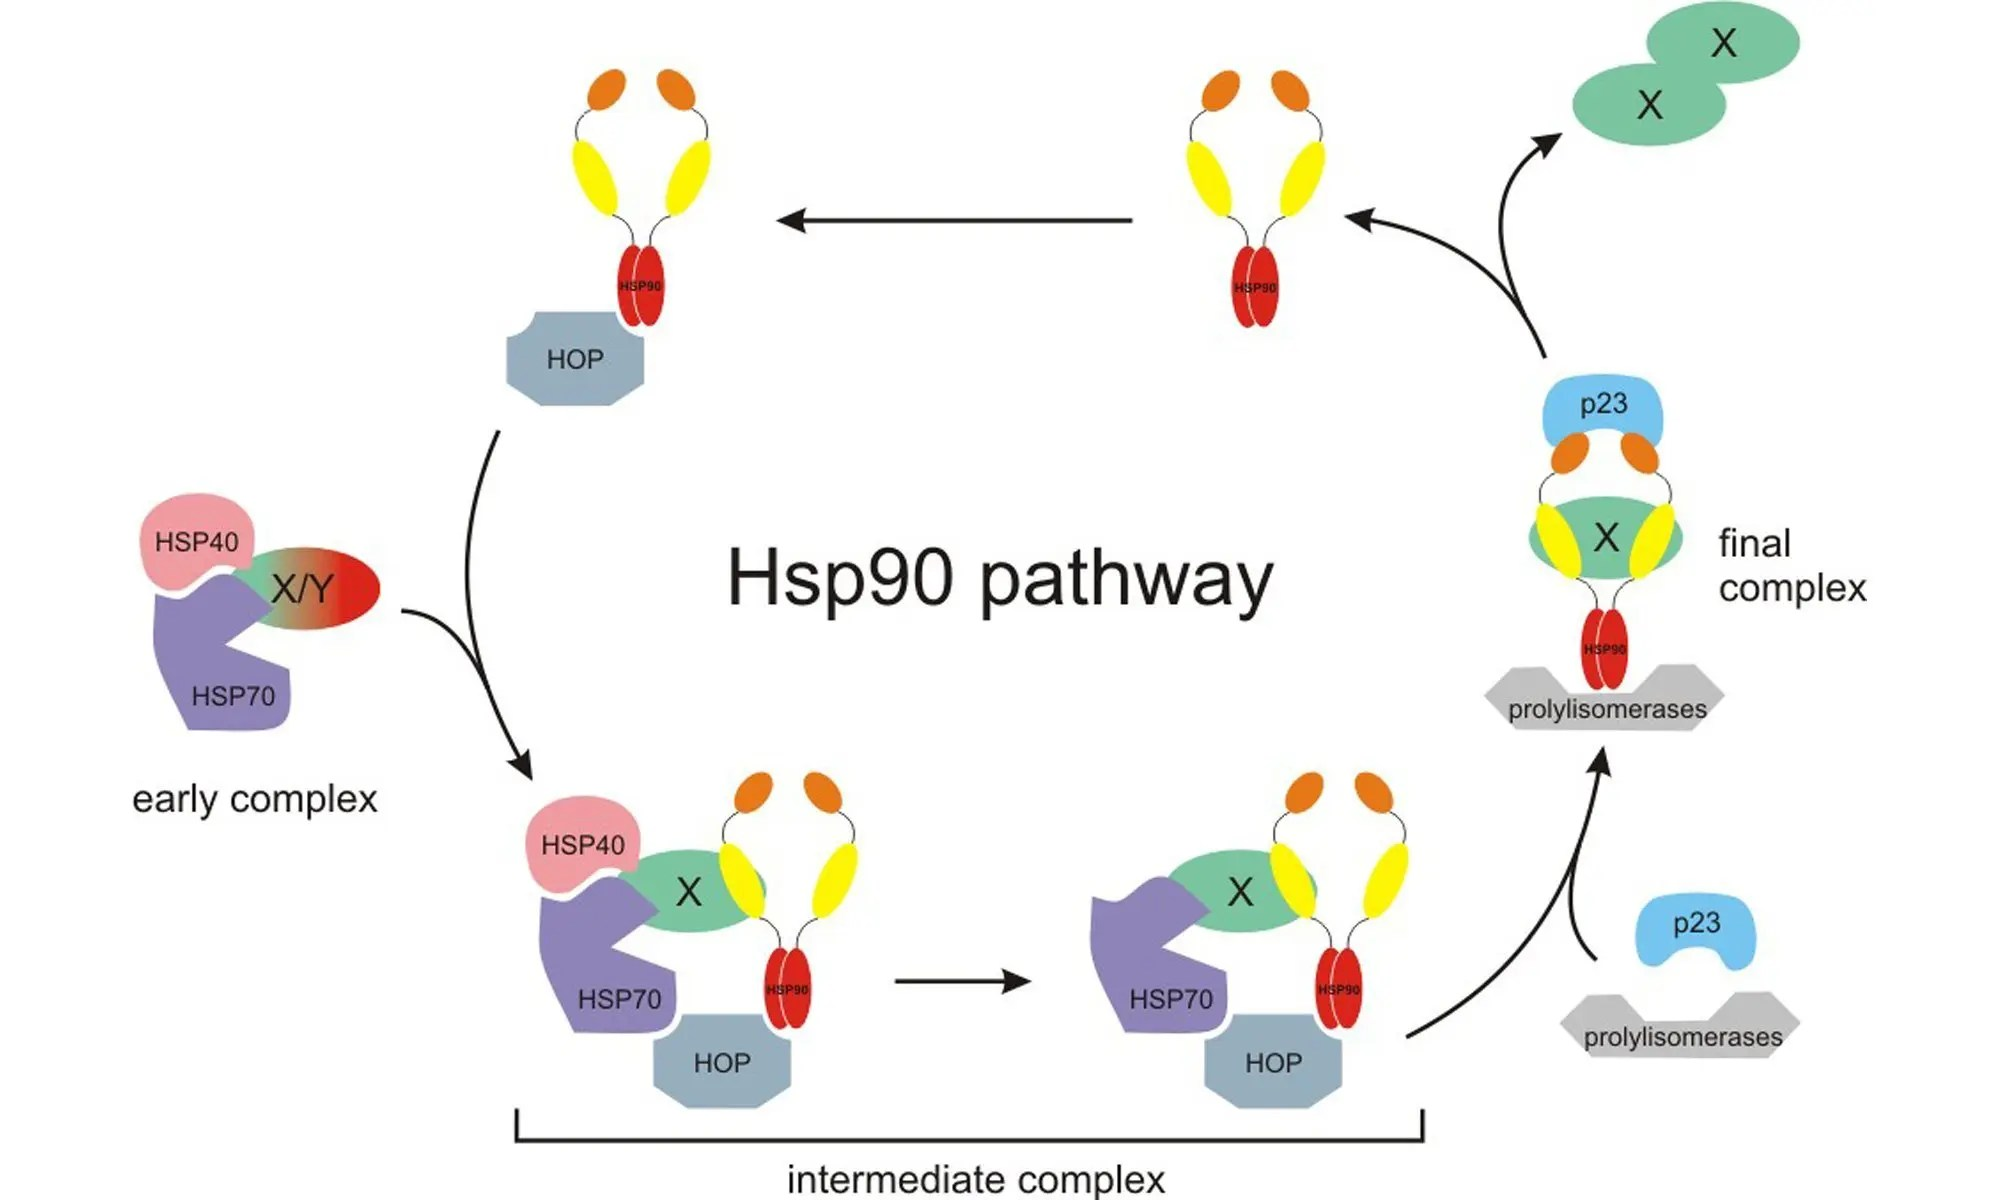 image of hsp90